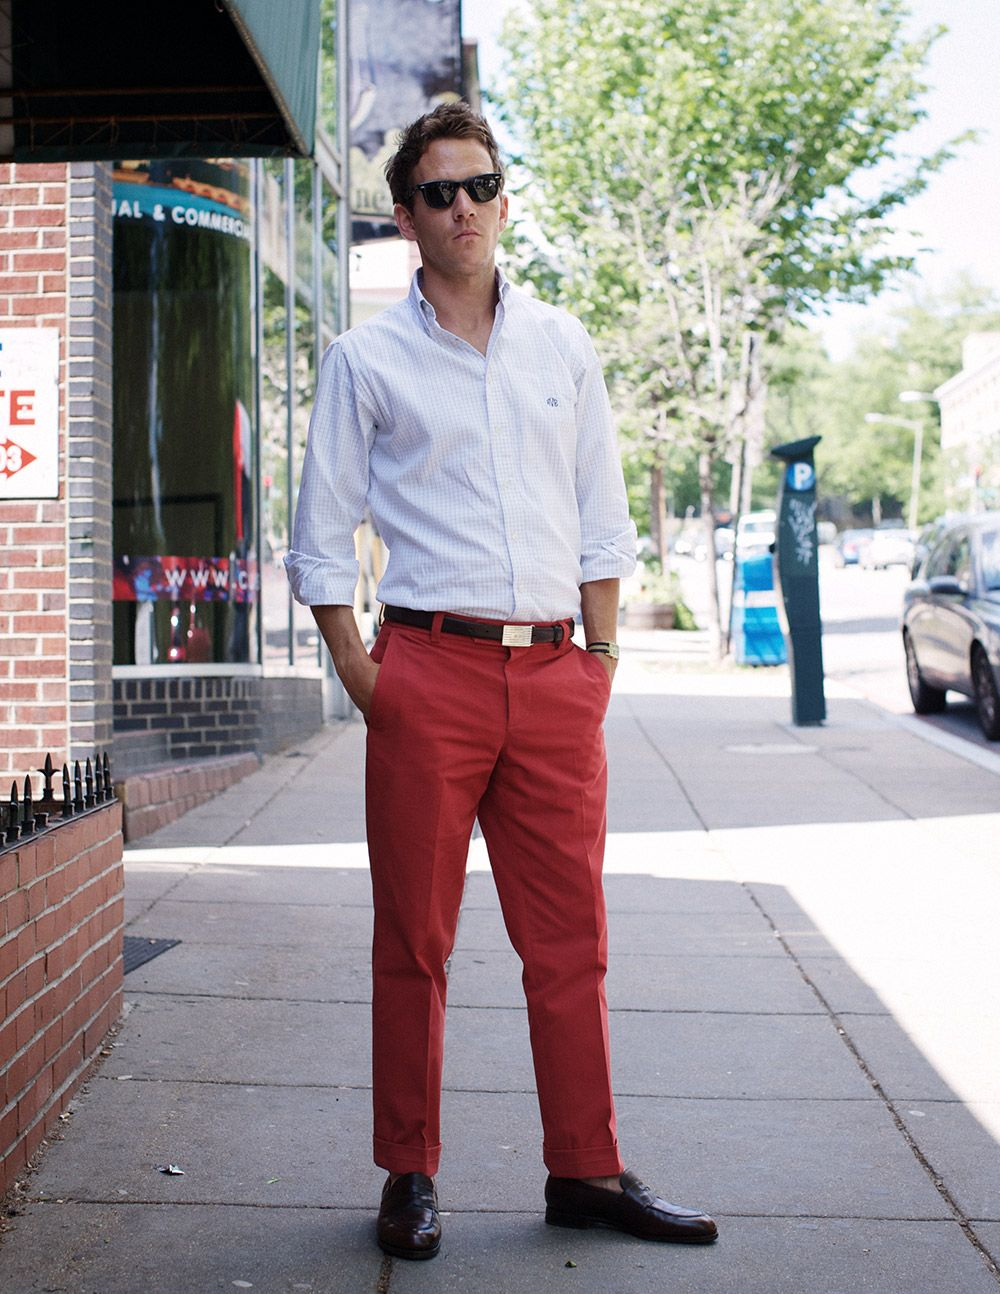 db3d378c8f131 slim nantucket red chinos, another essential find | Style | Red ...